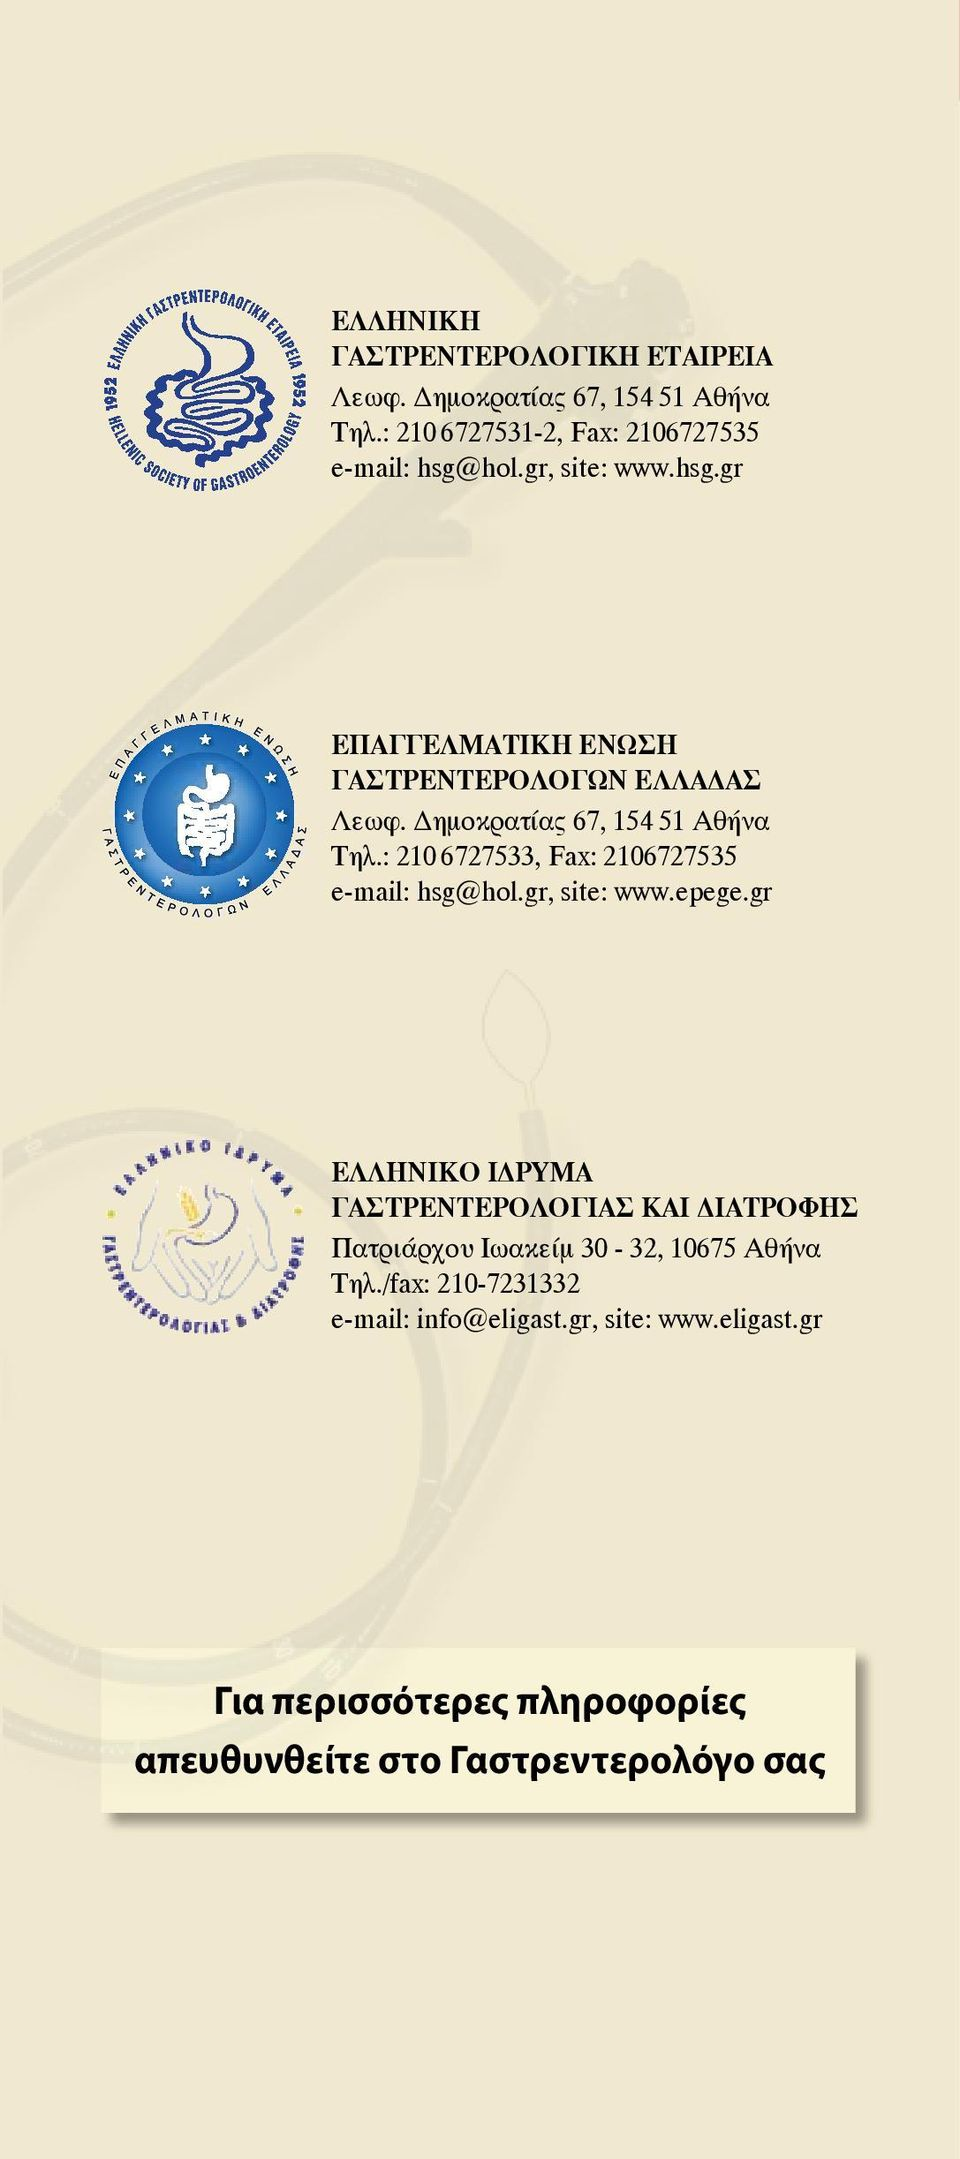 : 210 6727533, Fax: 2106727535 e-mail: hsg@hol.gr, site: www.epege.